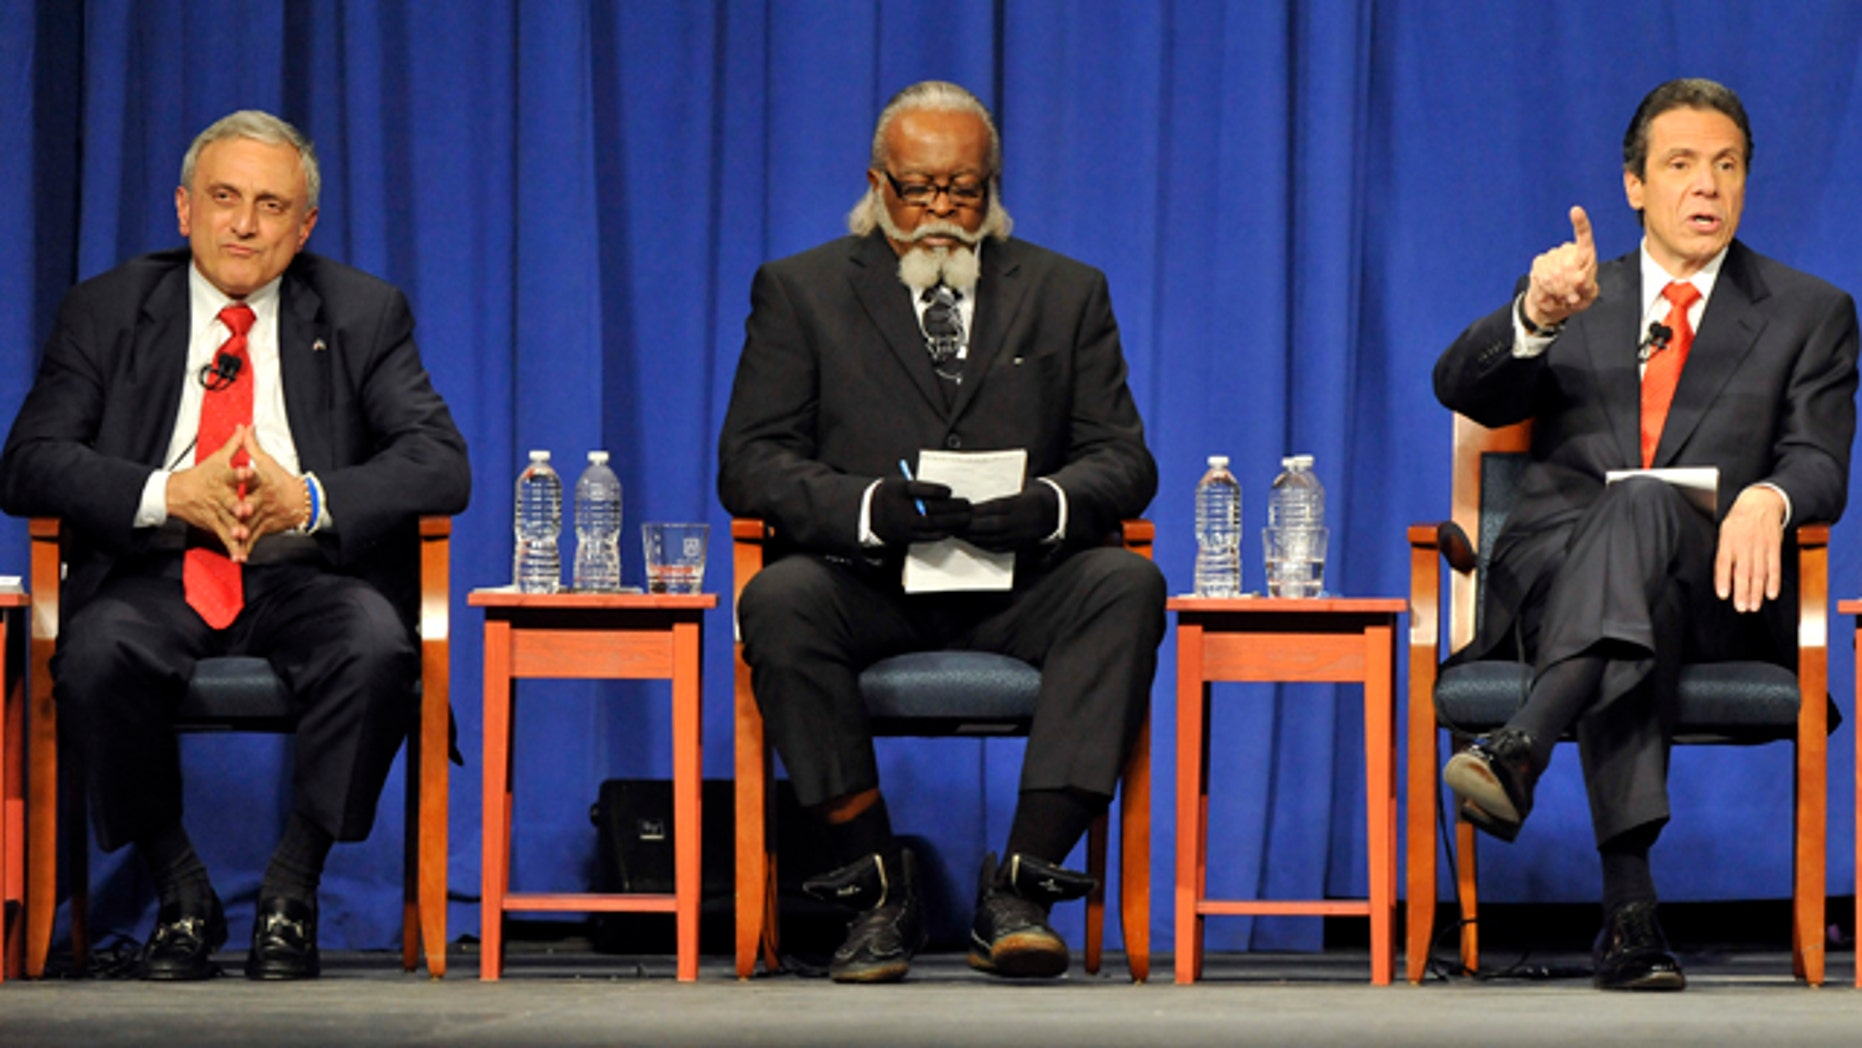 Oct. 18, 2010: Republican candidate Carl Paladino, left, listens with Rent is 2 Damn High candidate Jimmy McMillan as Democratic candidate Andrew Cuomo speaks during the 2010 New York State gubernatorial debate at Hofstra University in Hempstead, N.Y.